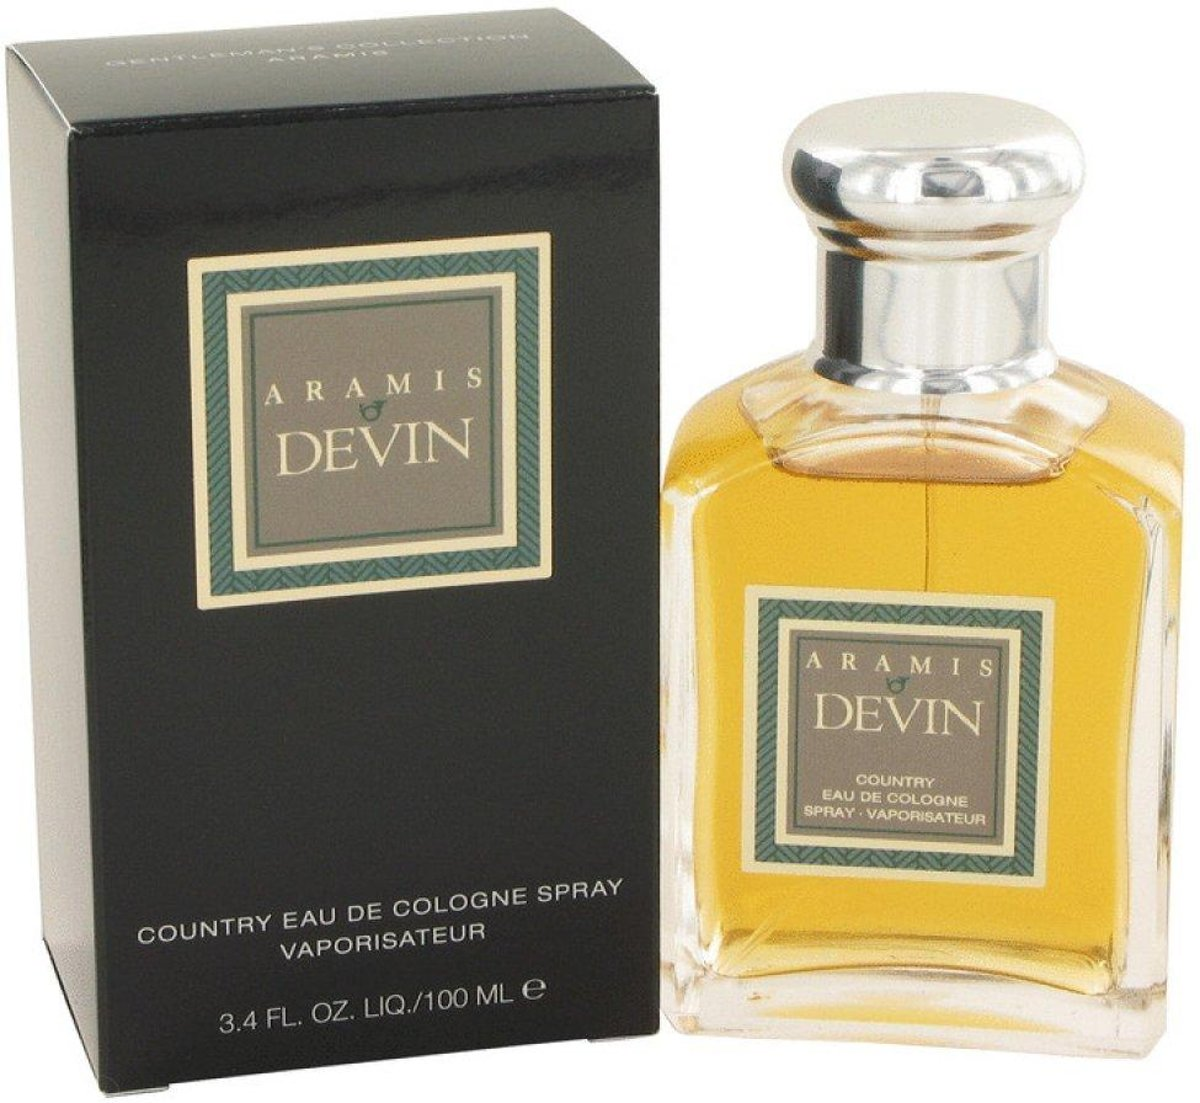 Aramis Devin 100 ml - Cologne Spray Men